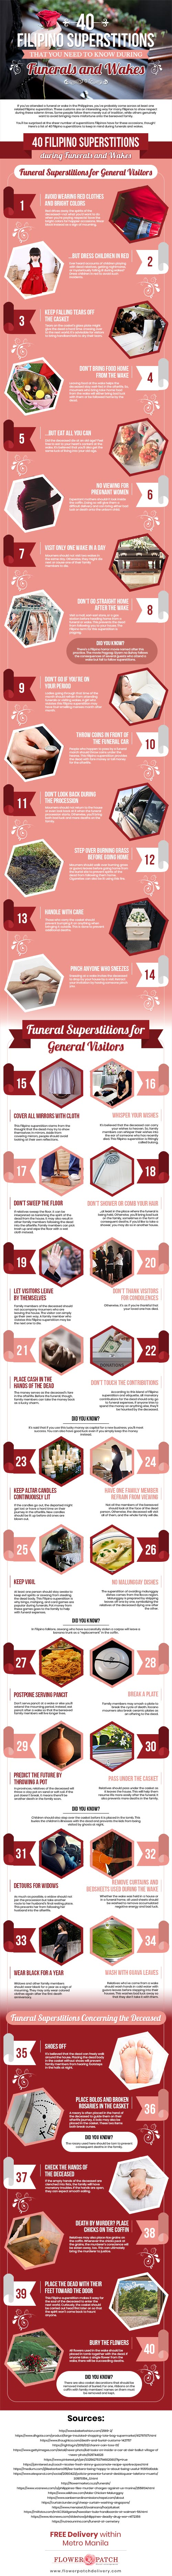 40 Filipino Superstitions that You Need to Know during Funerals and Wakes Infographics